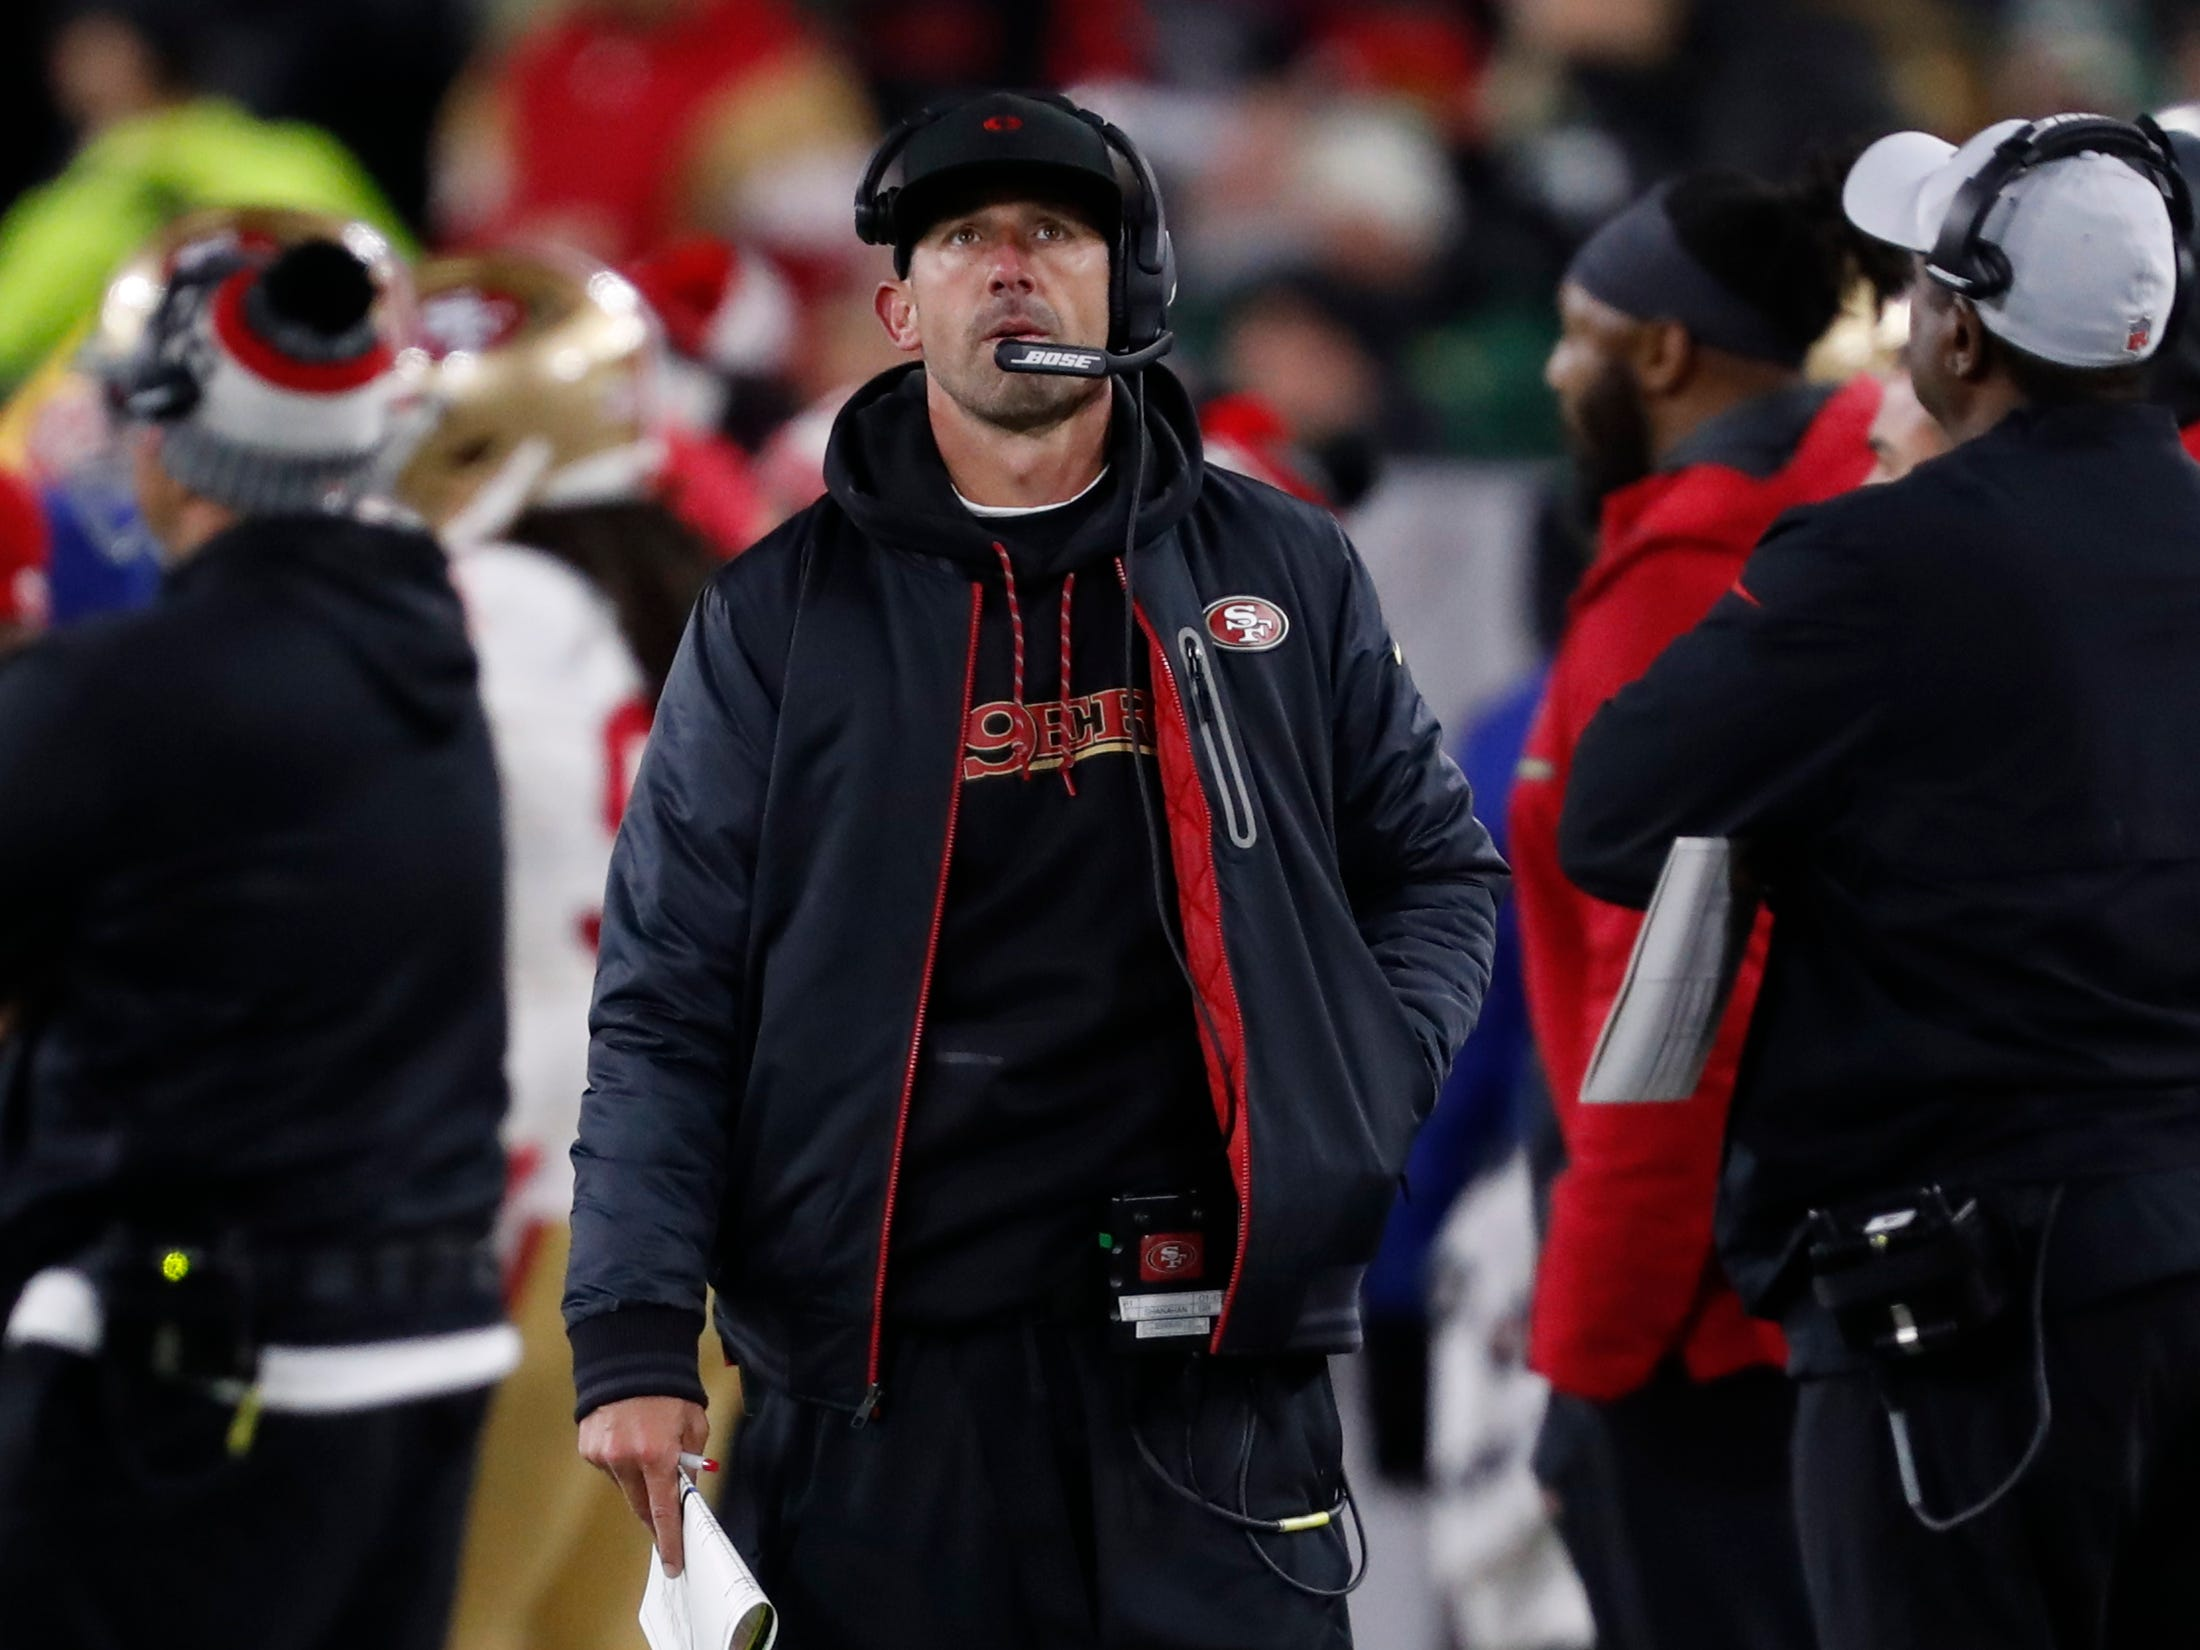 30. 49ers (32): They seem to lose a key player by the week, yet Kyle Shanahan's charges fight to the final whistle week after week, an encouraging sign for the future.